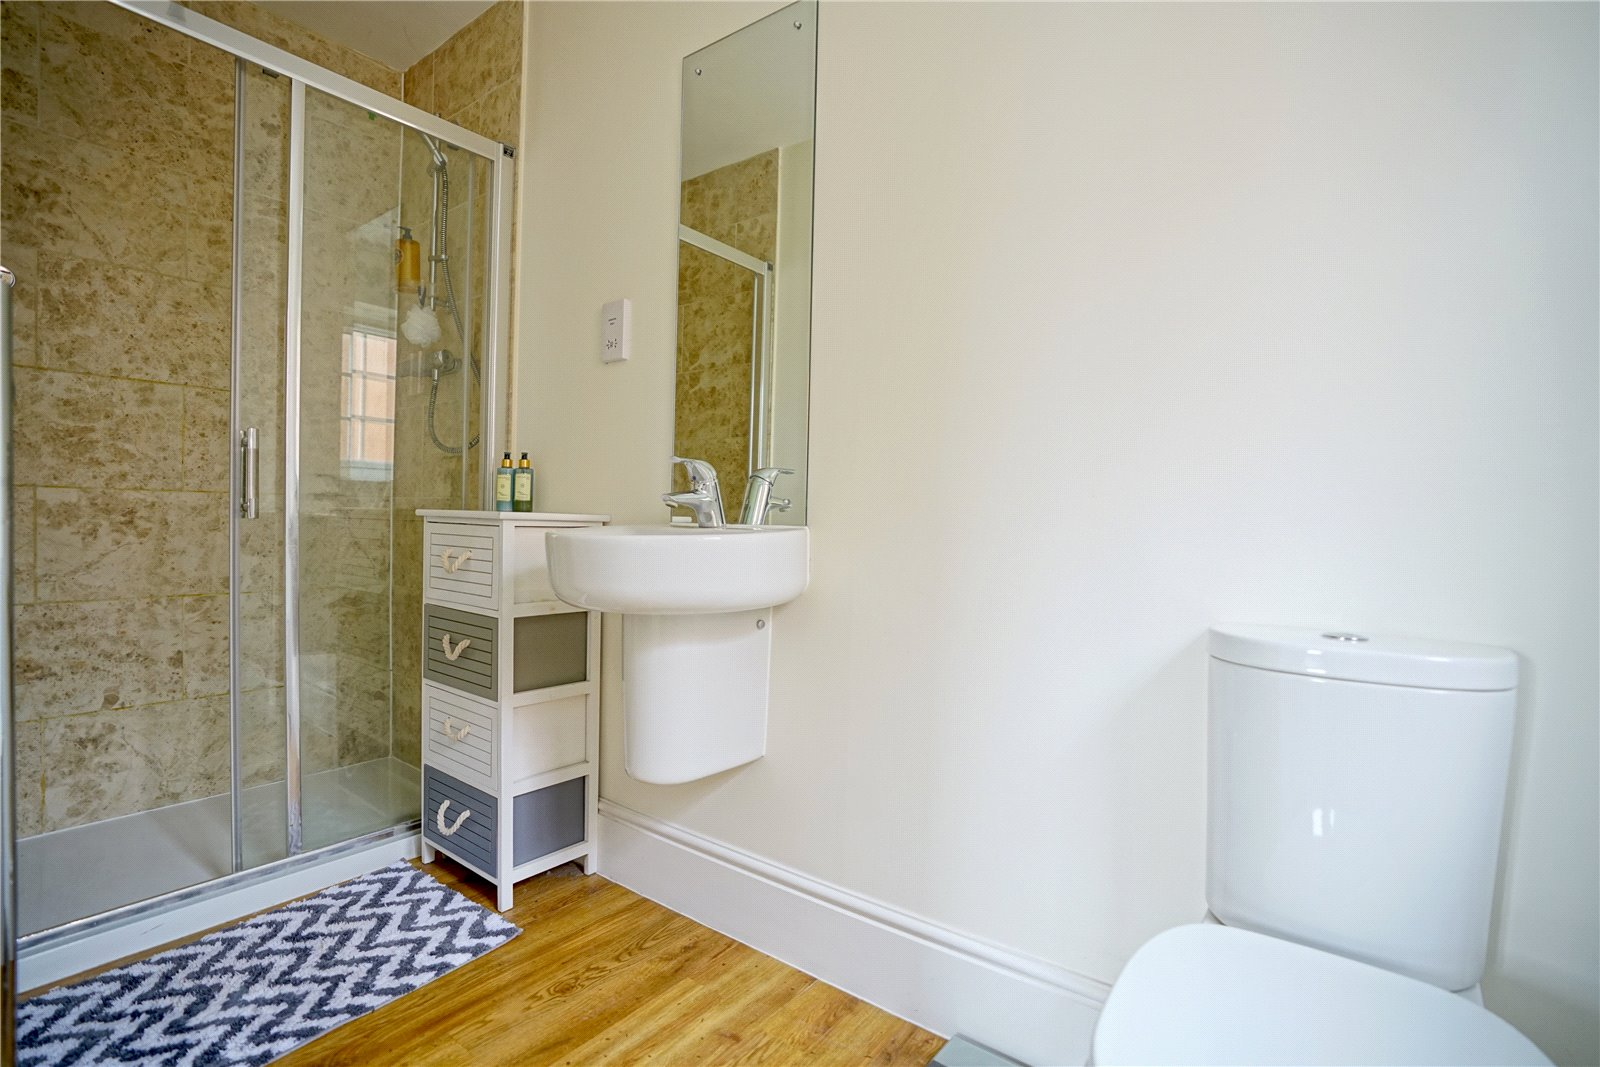 4 bed house for sale in Field Gate Close, St. Neots  - Property Image 14